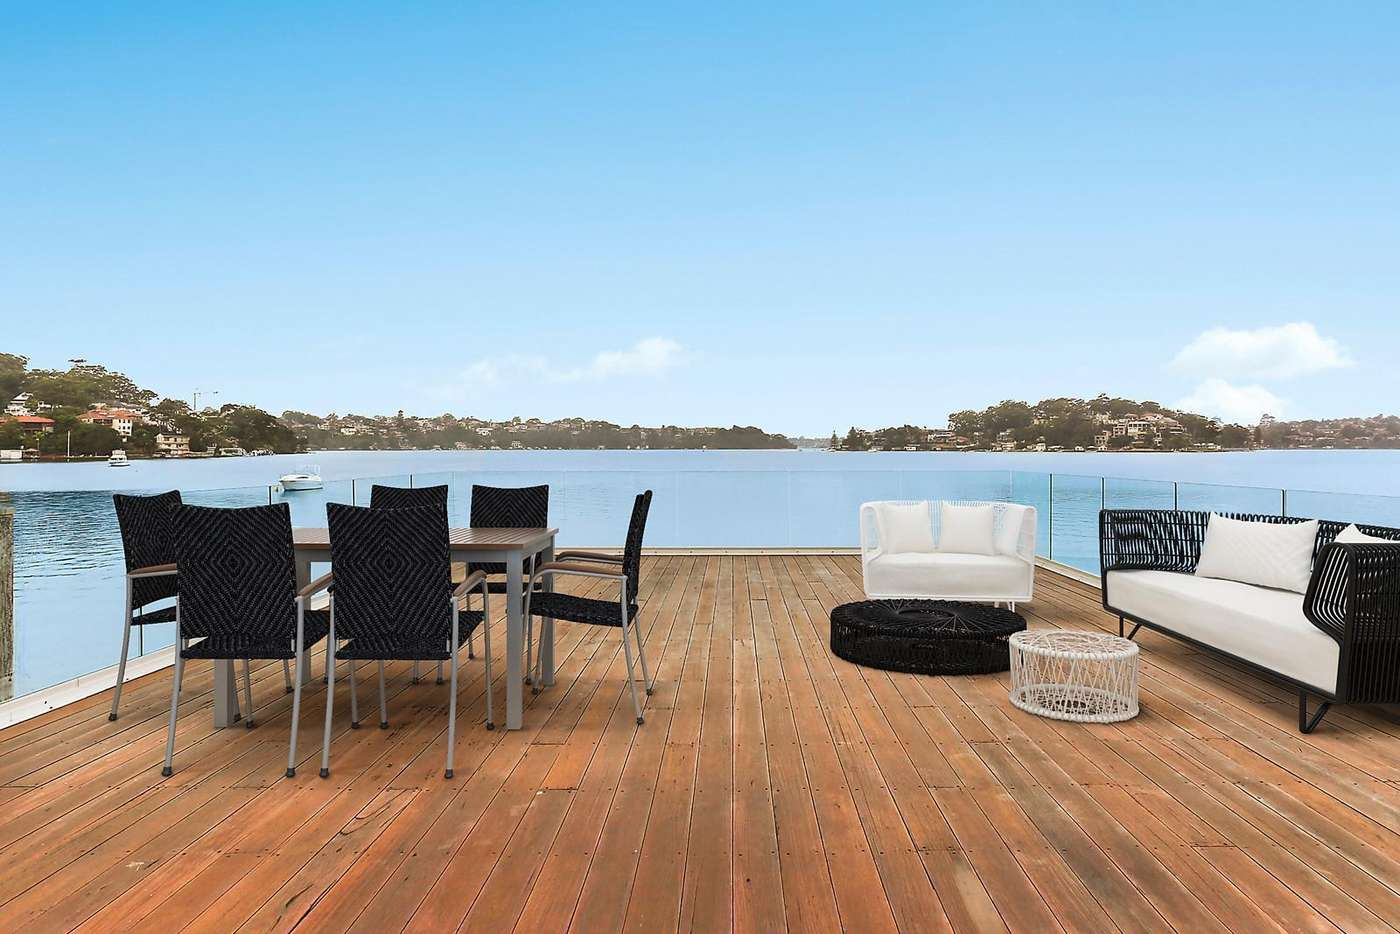 Fifth view of Homely house listing, 26 Bowden Crescent, Connells Point NSW 2221